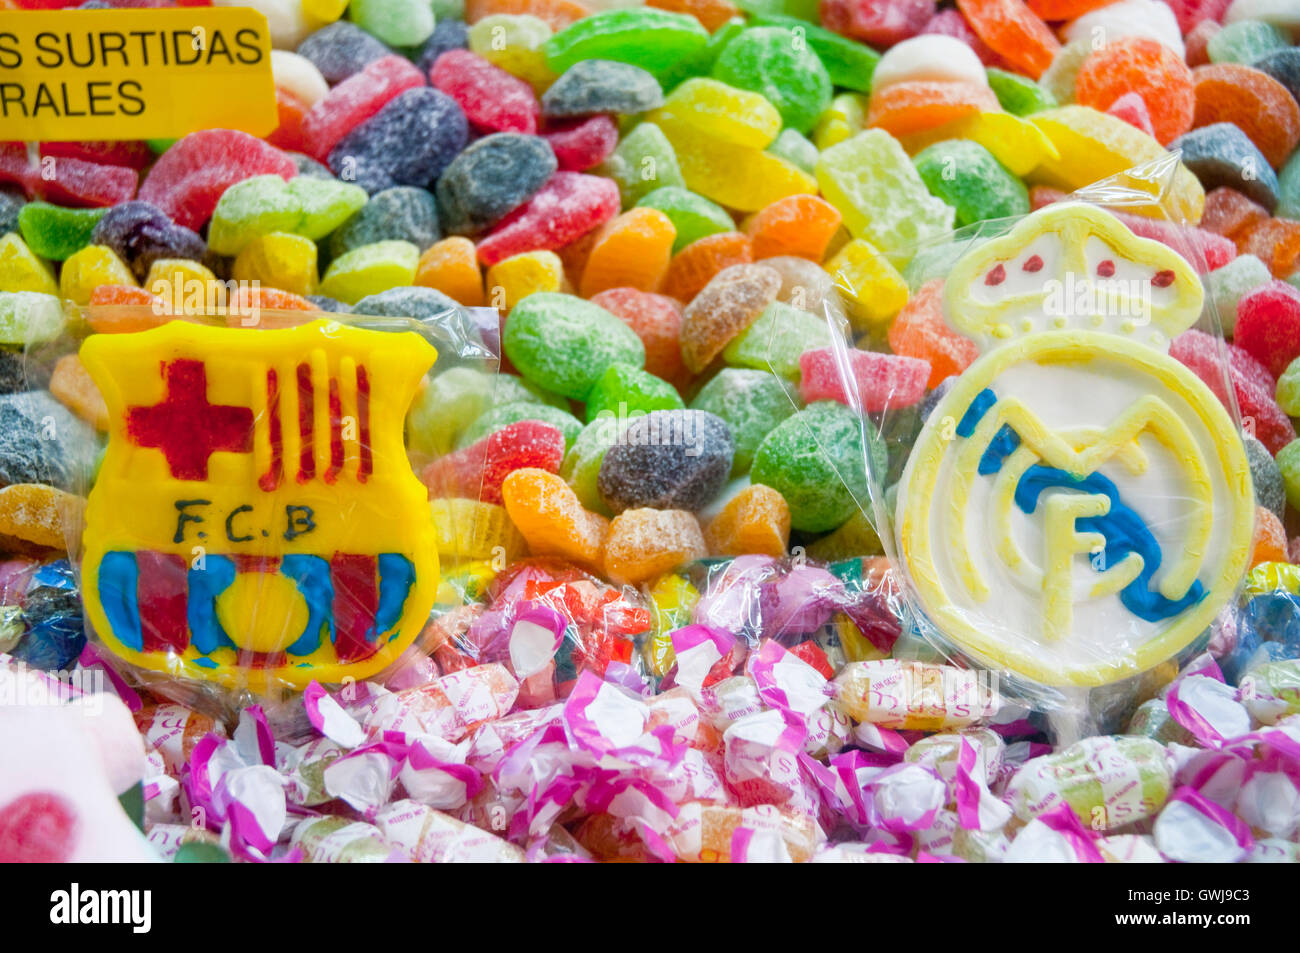 Lollipops of Barcelona FC and Real Madrid CF, close view. Madrid, Spain. - Stock Image